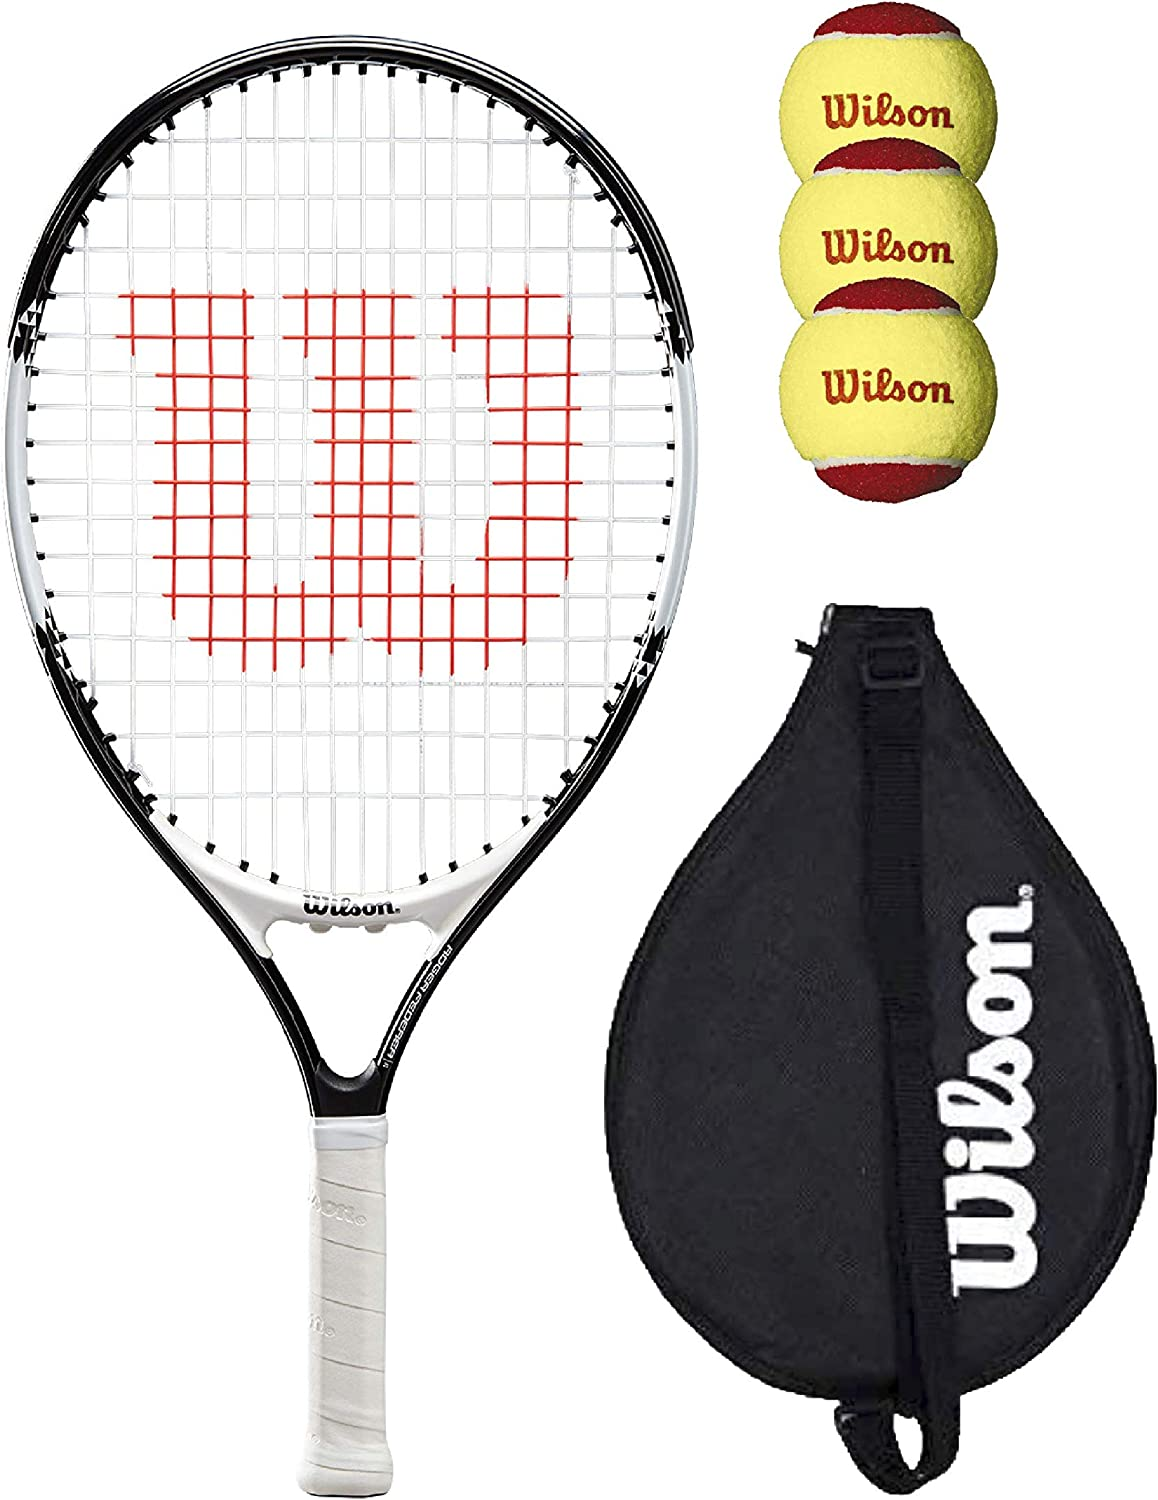 Wilson Federer 21 Junior Tennis Racket with Cover and 3 Tennis Balls Bundle Various Models Available